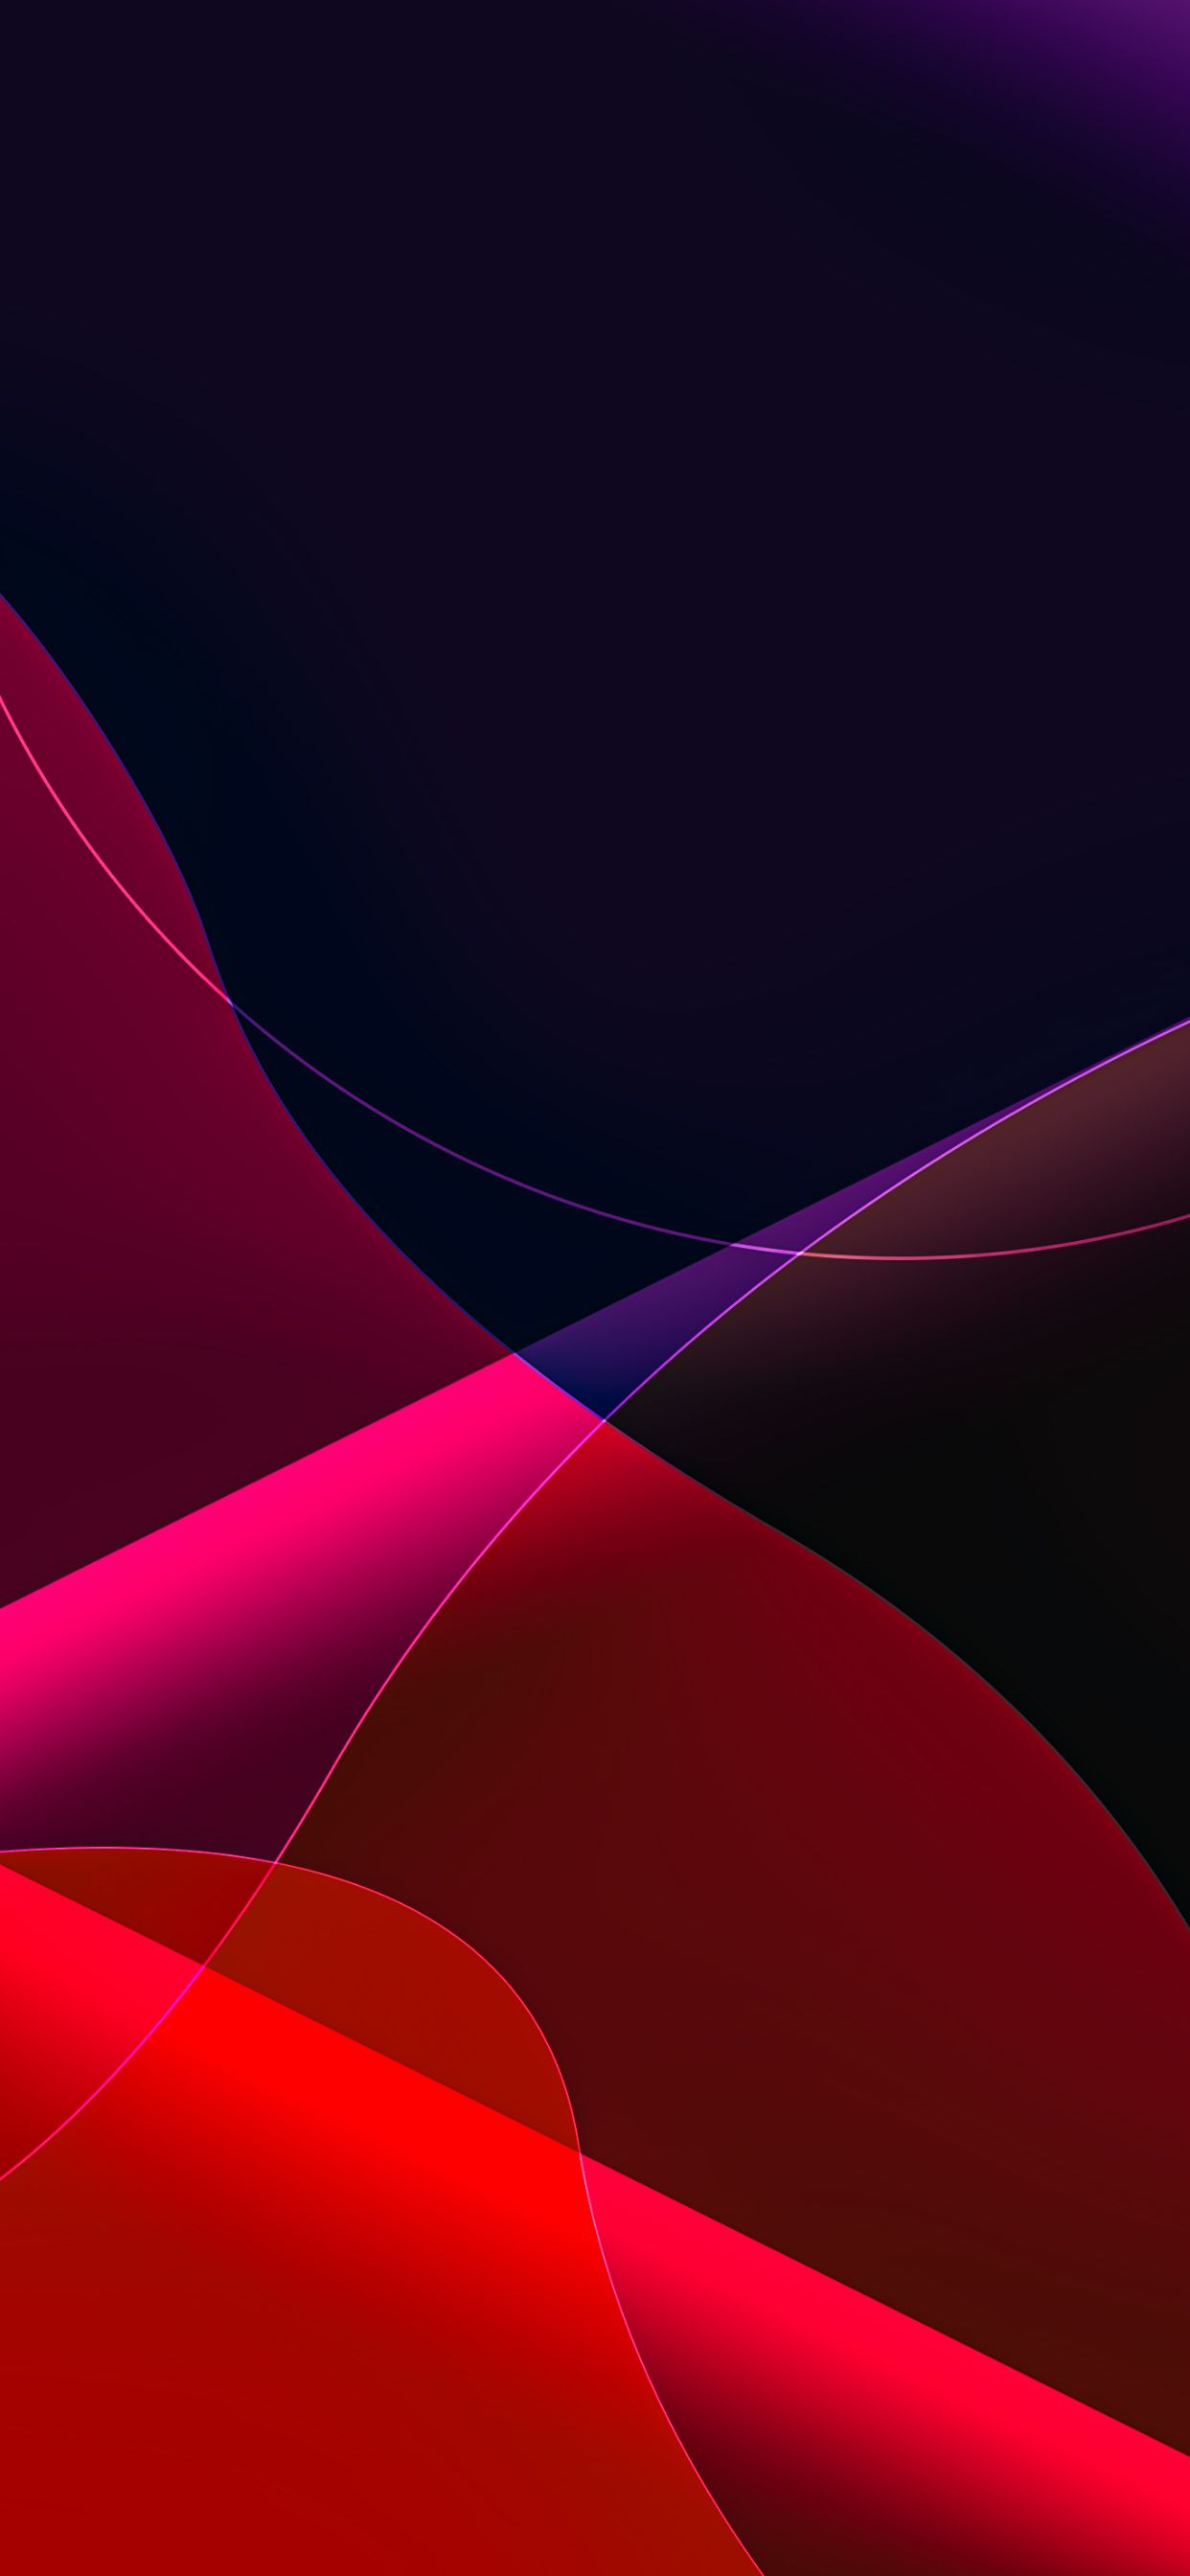 Red Swoosh Gradient By Hk3ton On Twitter Abstract Wallpaper Backgrounds Iphone Homescreen Wallpaper Iphone Wallpaper Hipster